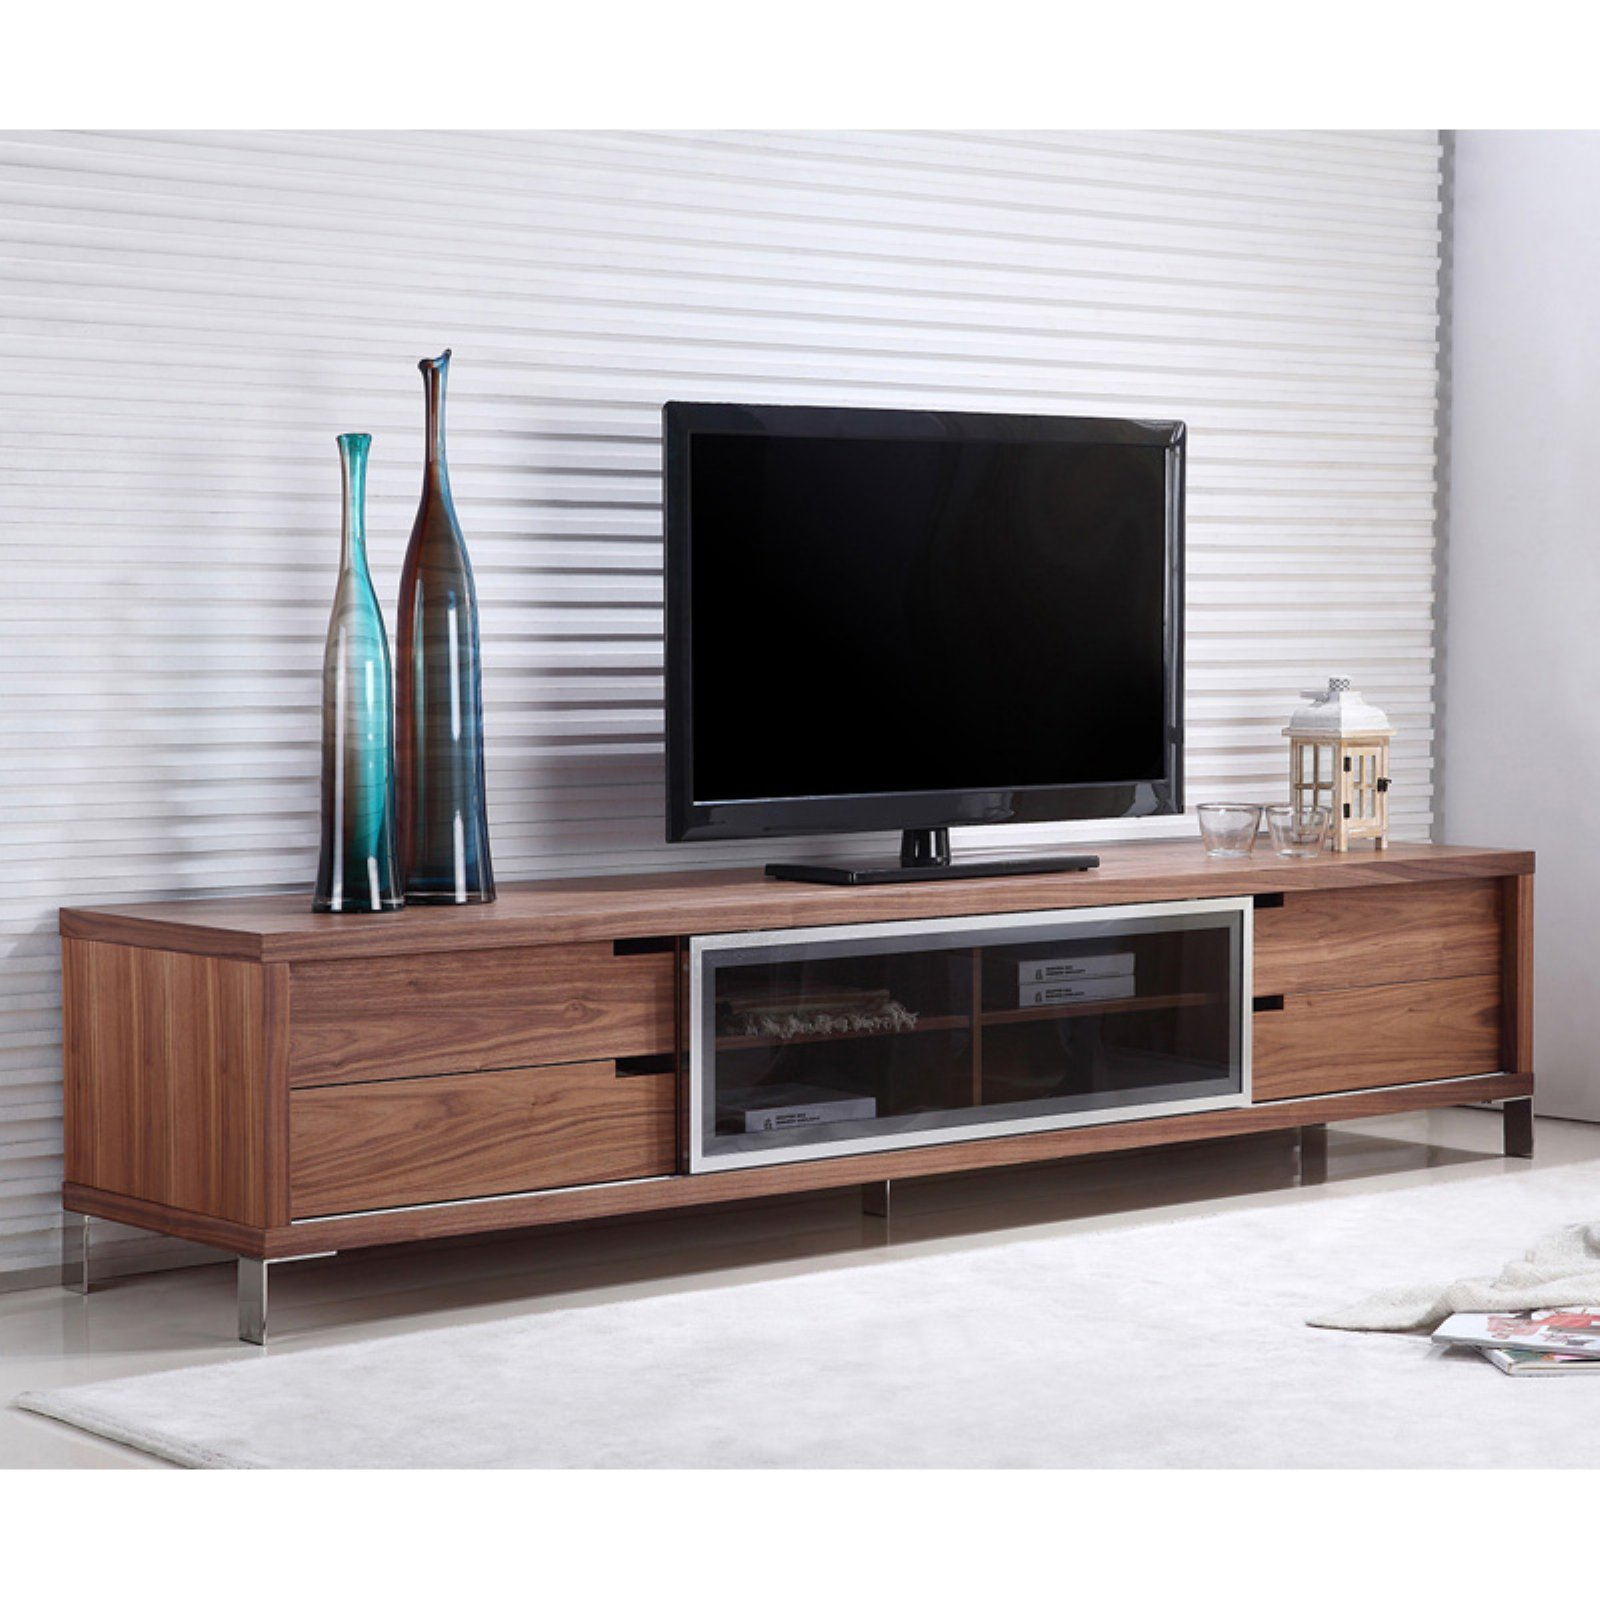 Casabianca Furniture Duke 94 in. TV Stand